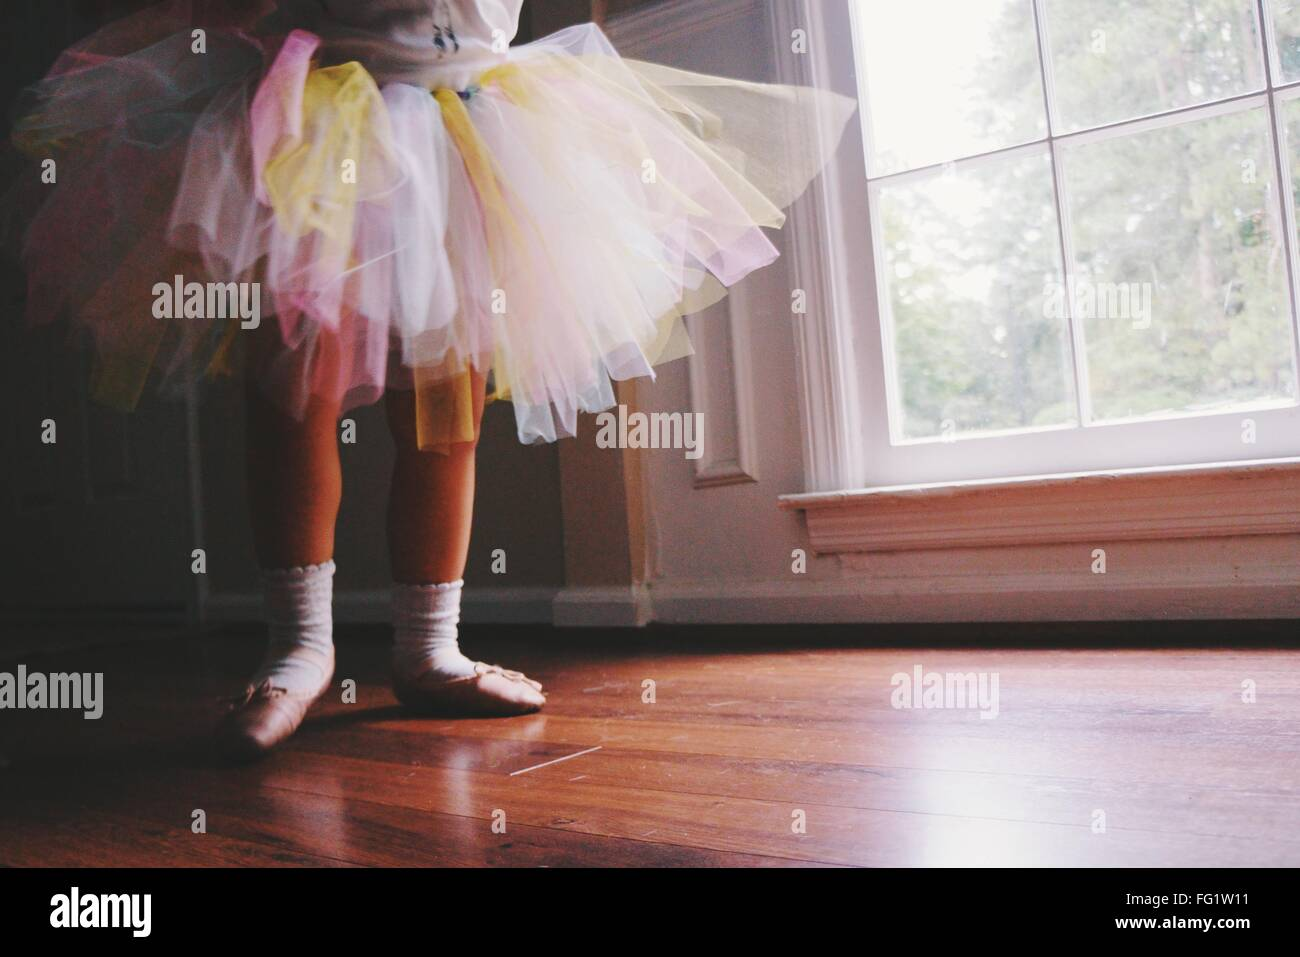 Low Section Of Ballerina Standing On Hardwood Floor At Home Stock Photo